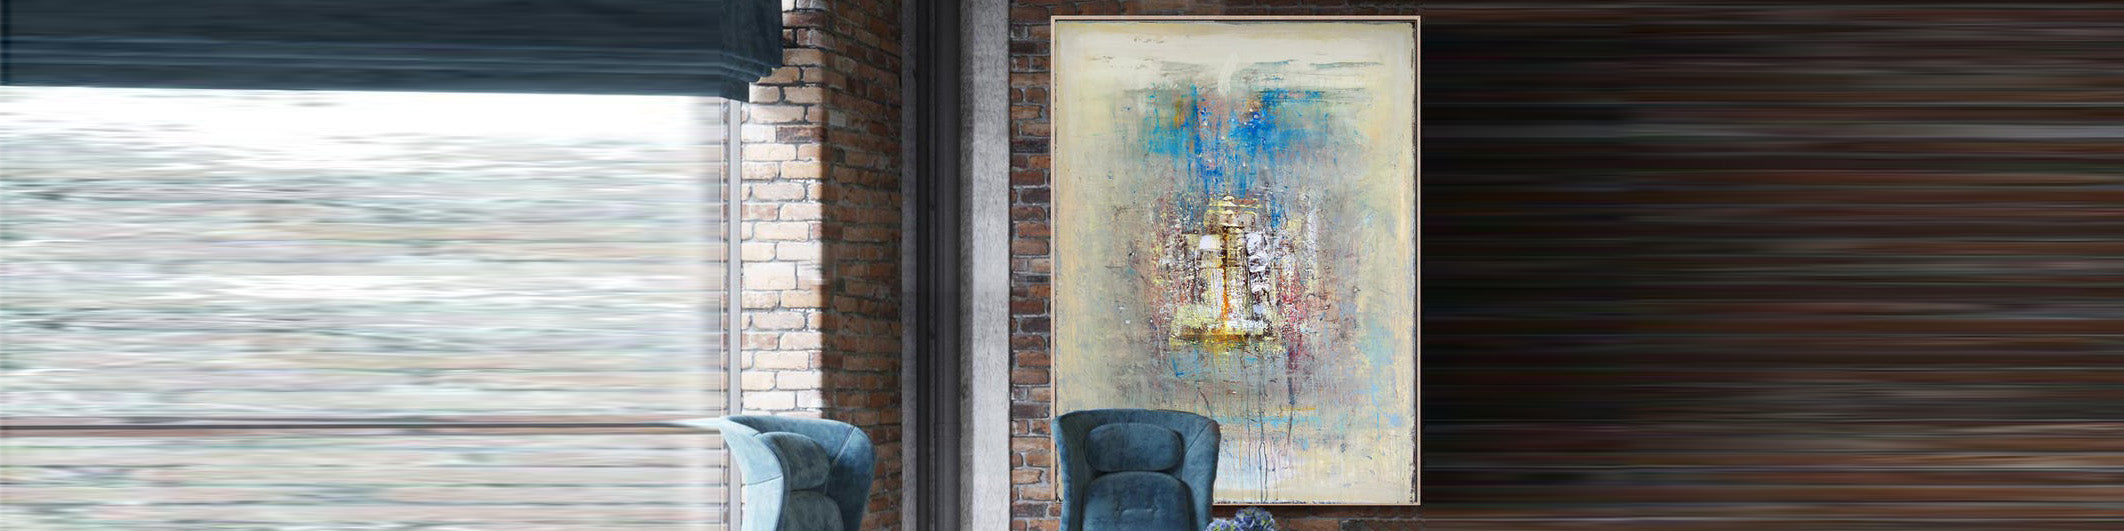 How to decorate an office with oversize artwork